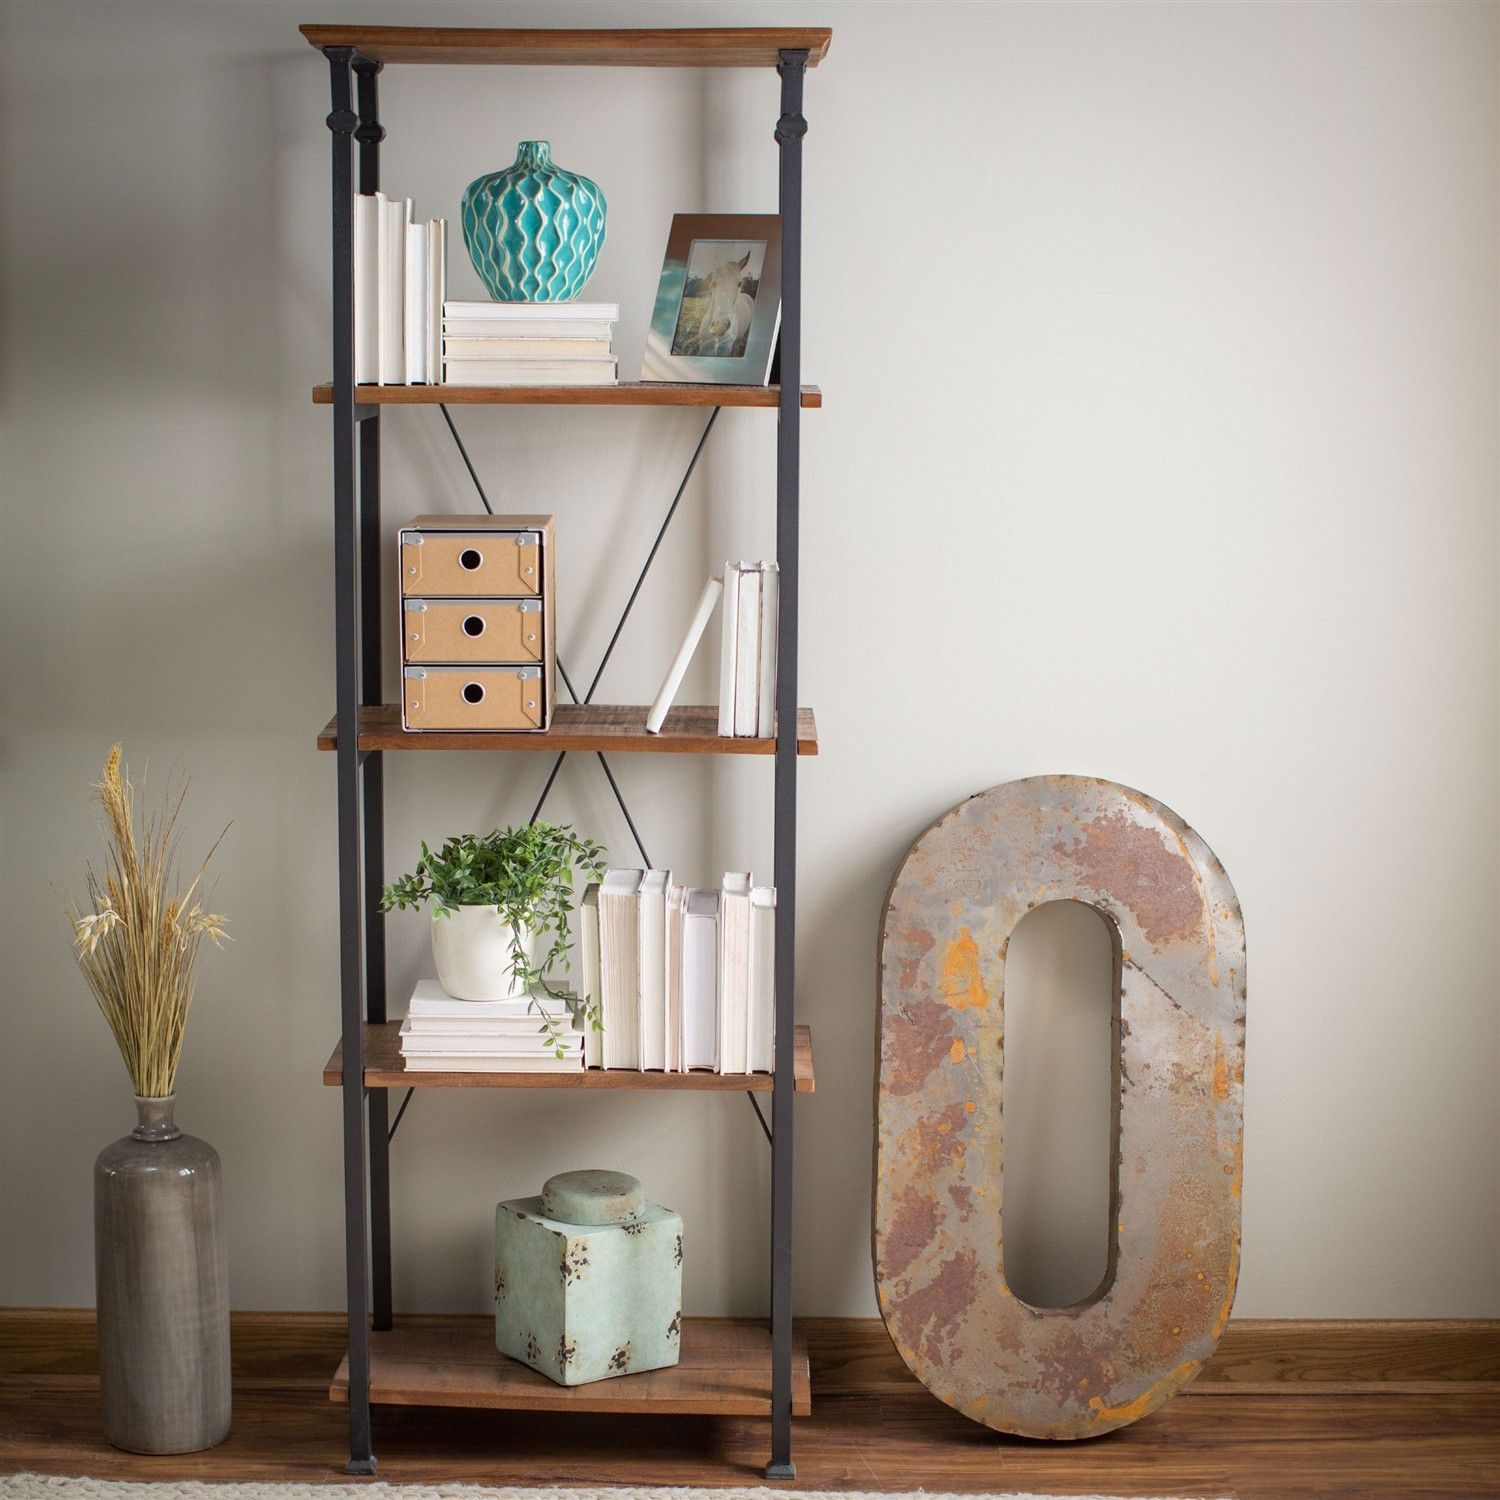 Living Room Kitchen Storage 4 Shelf Bookcase Bookshelf Vintage Industrial Style